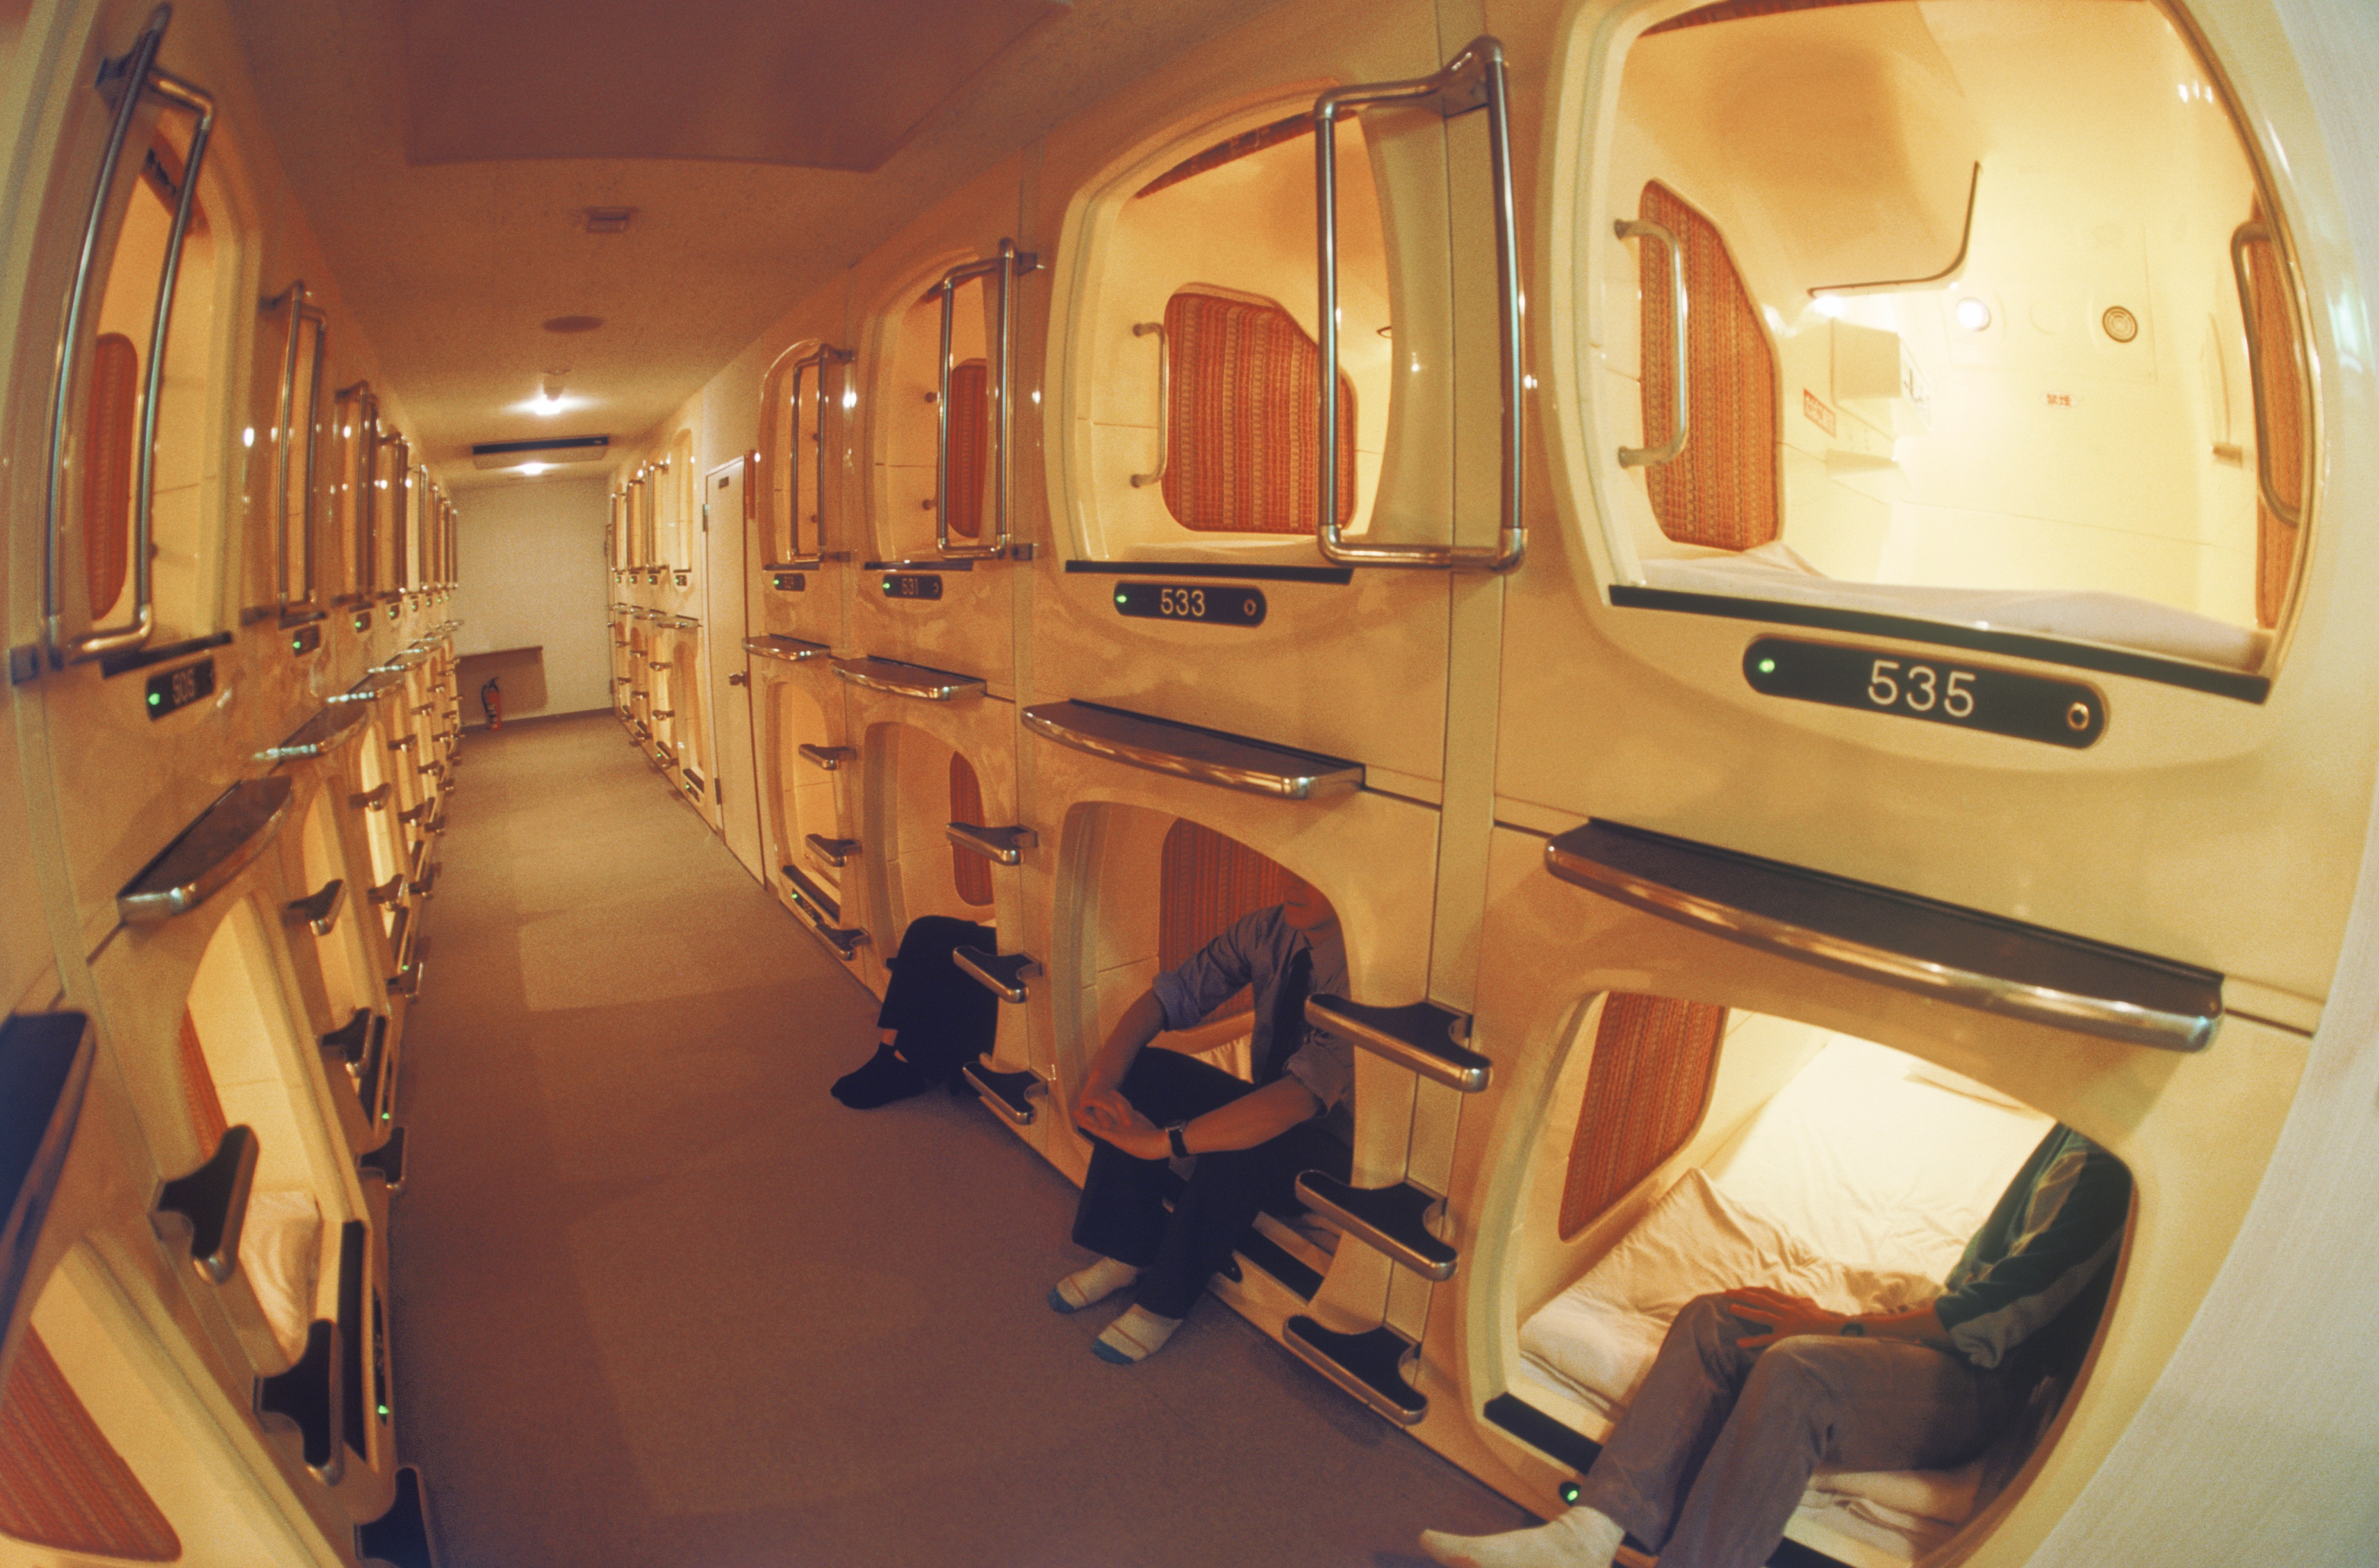 Australia s first capsule hotel is opening in sydney sbs for Design hotel japan